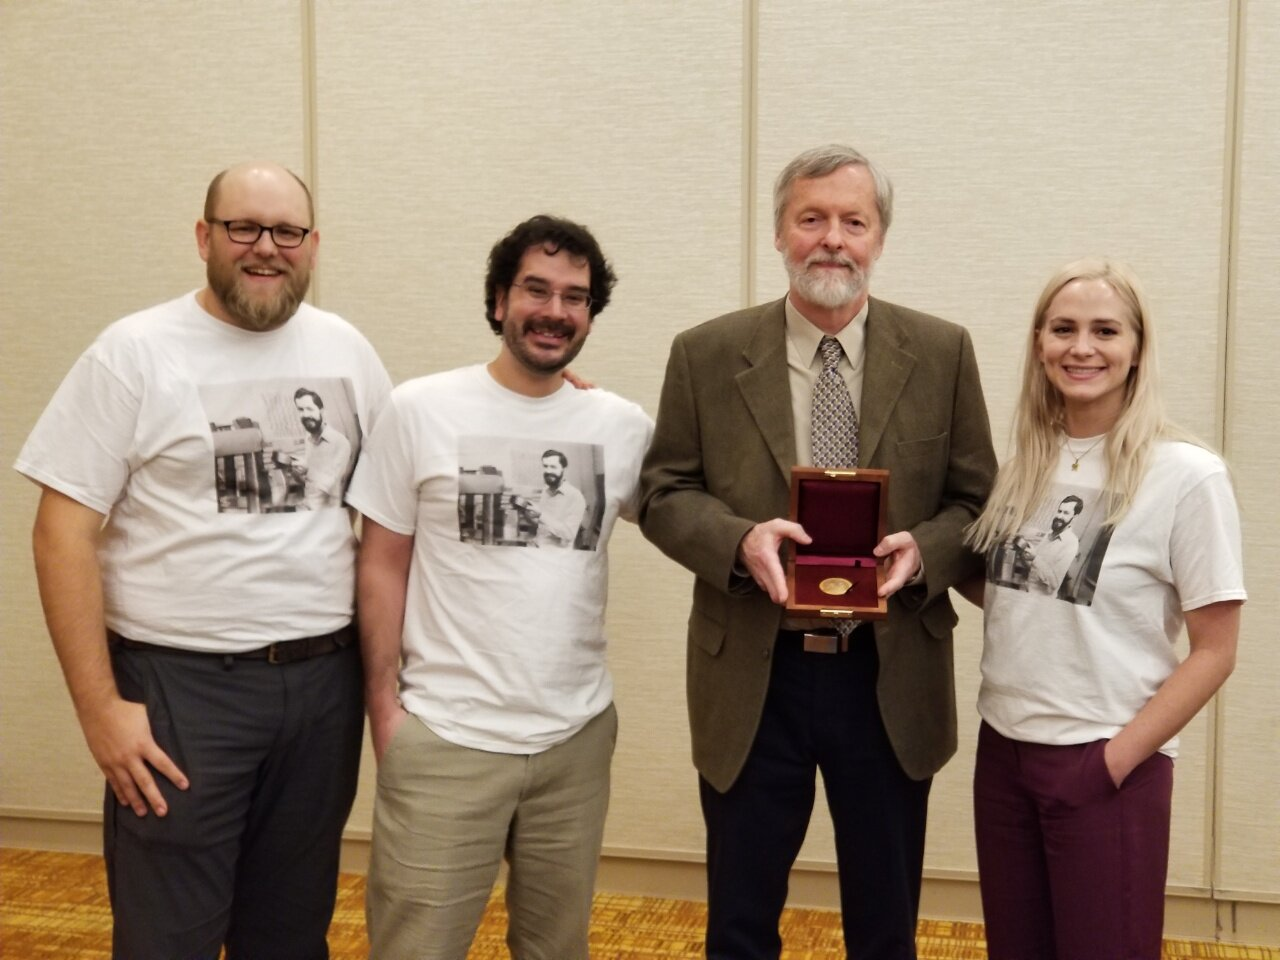 RPI alumni celebrate Bruce Watson's Roebling Medal at GSA 2018 (check out young EBW on our shirts!)